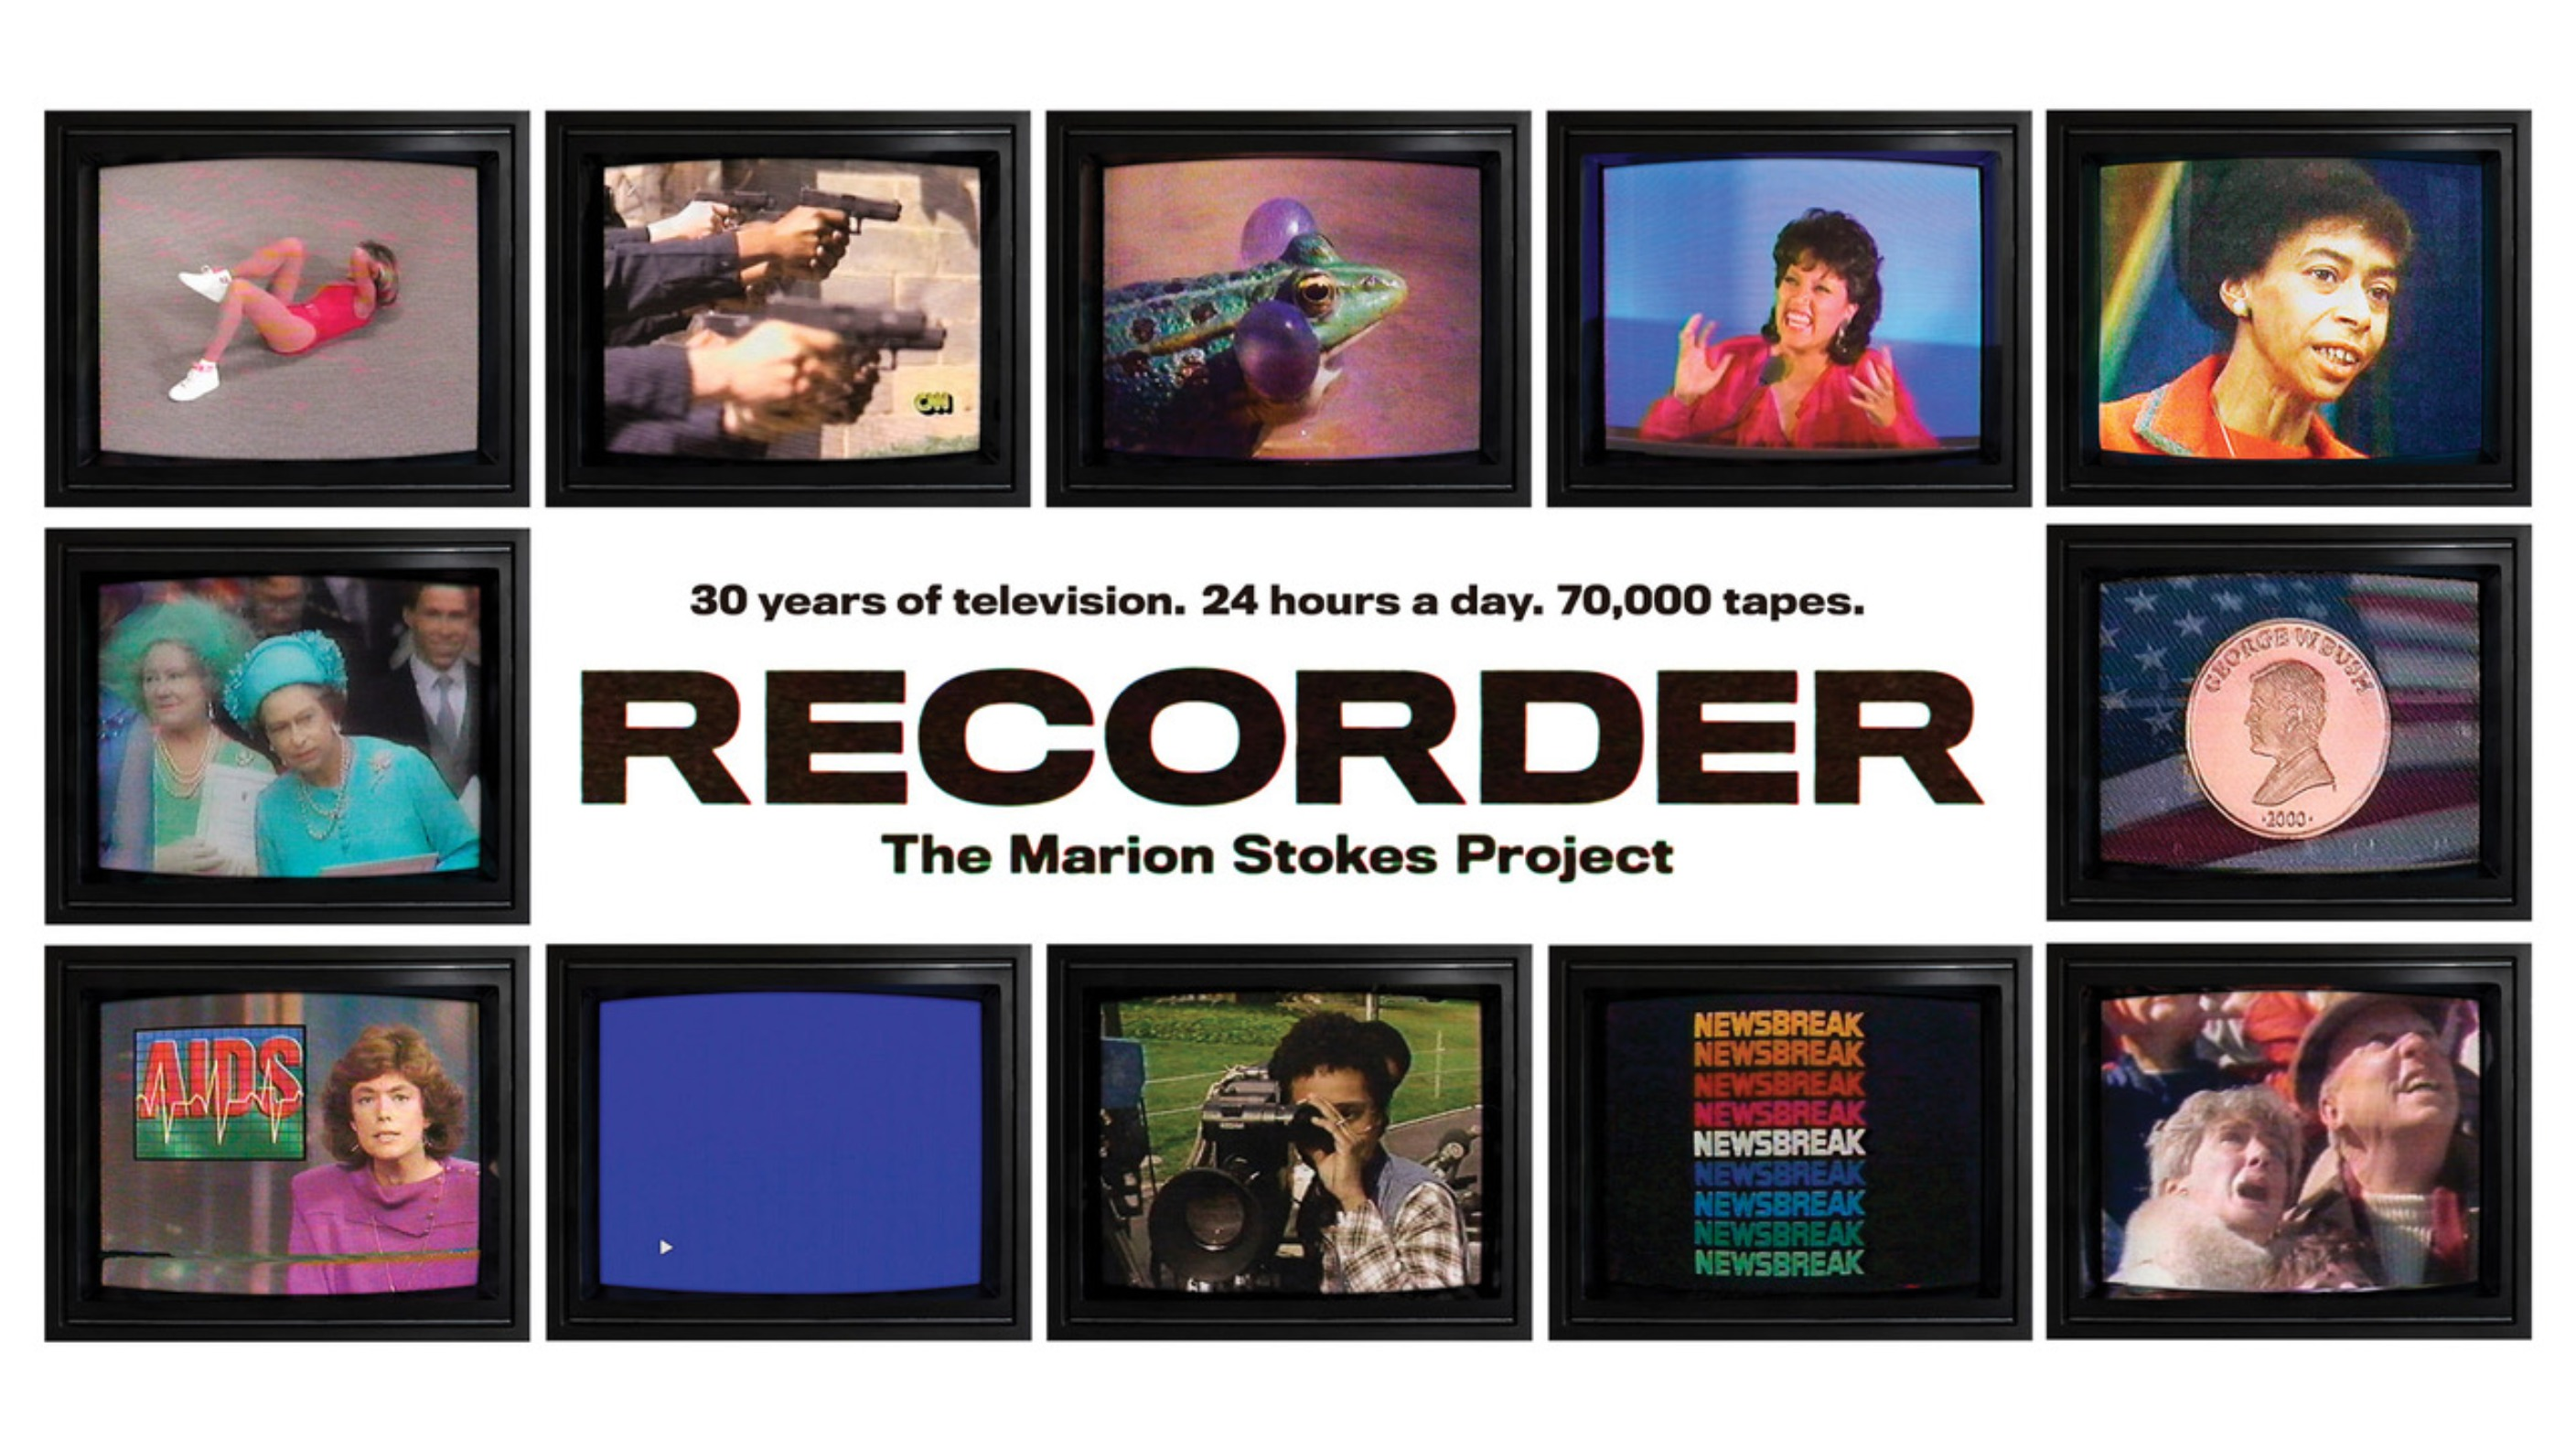 Recorder: The Marion Stokes Project - Rent